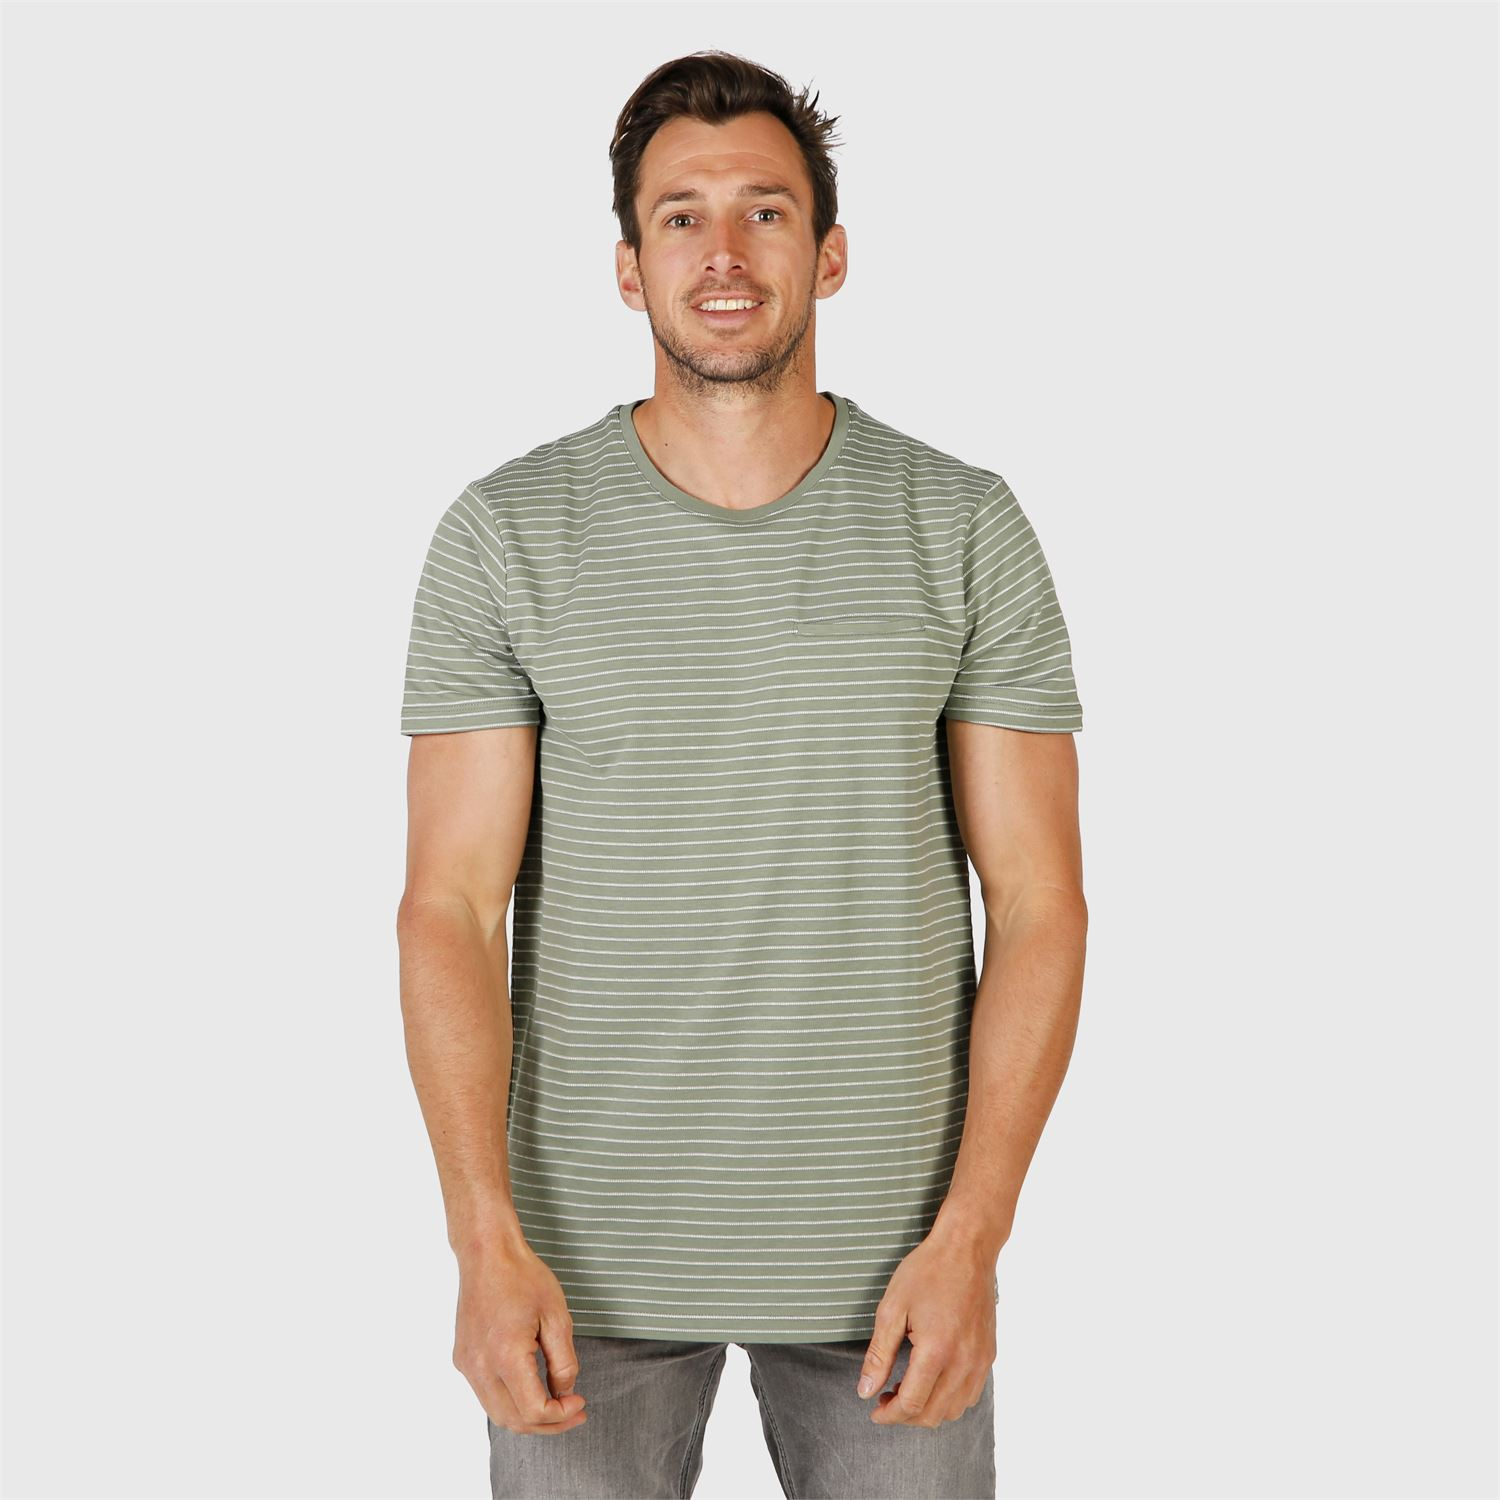 Ben-Stripe Mens T-shirt